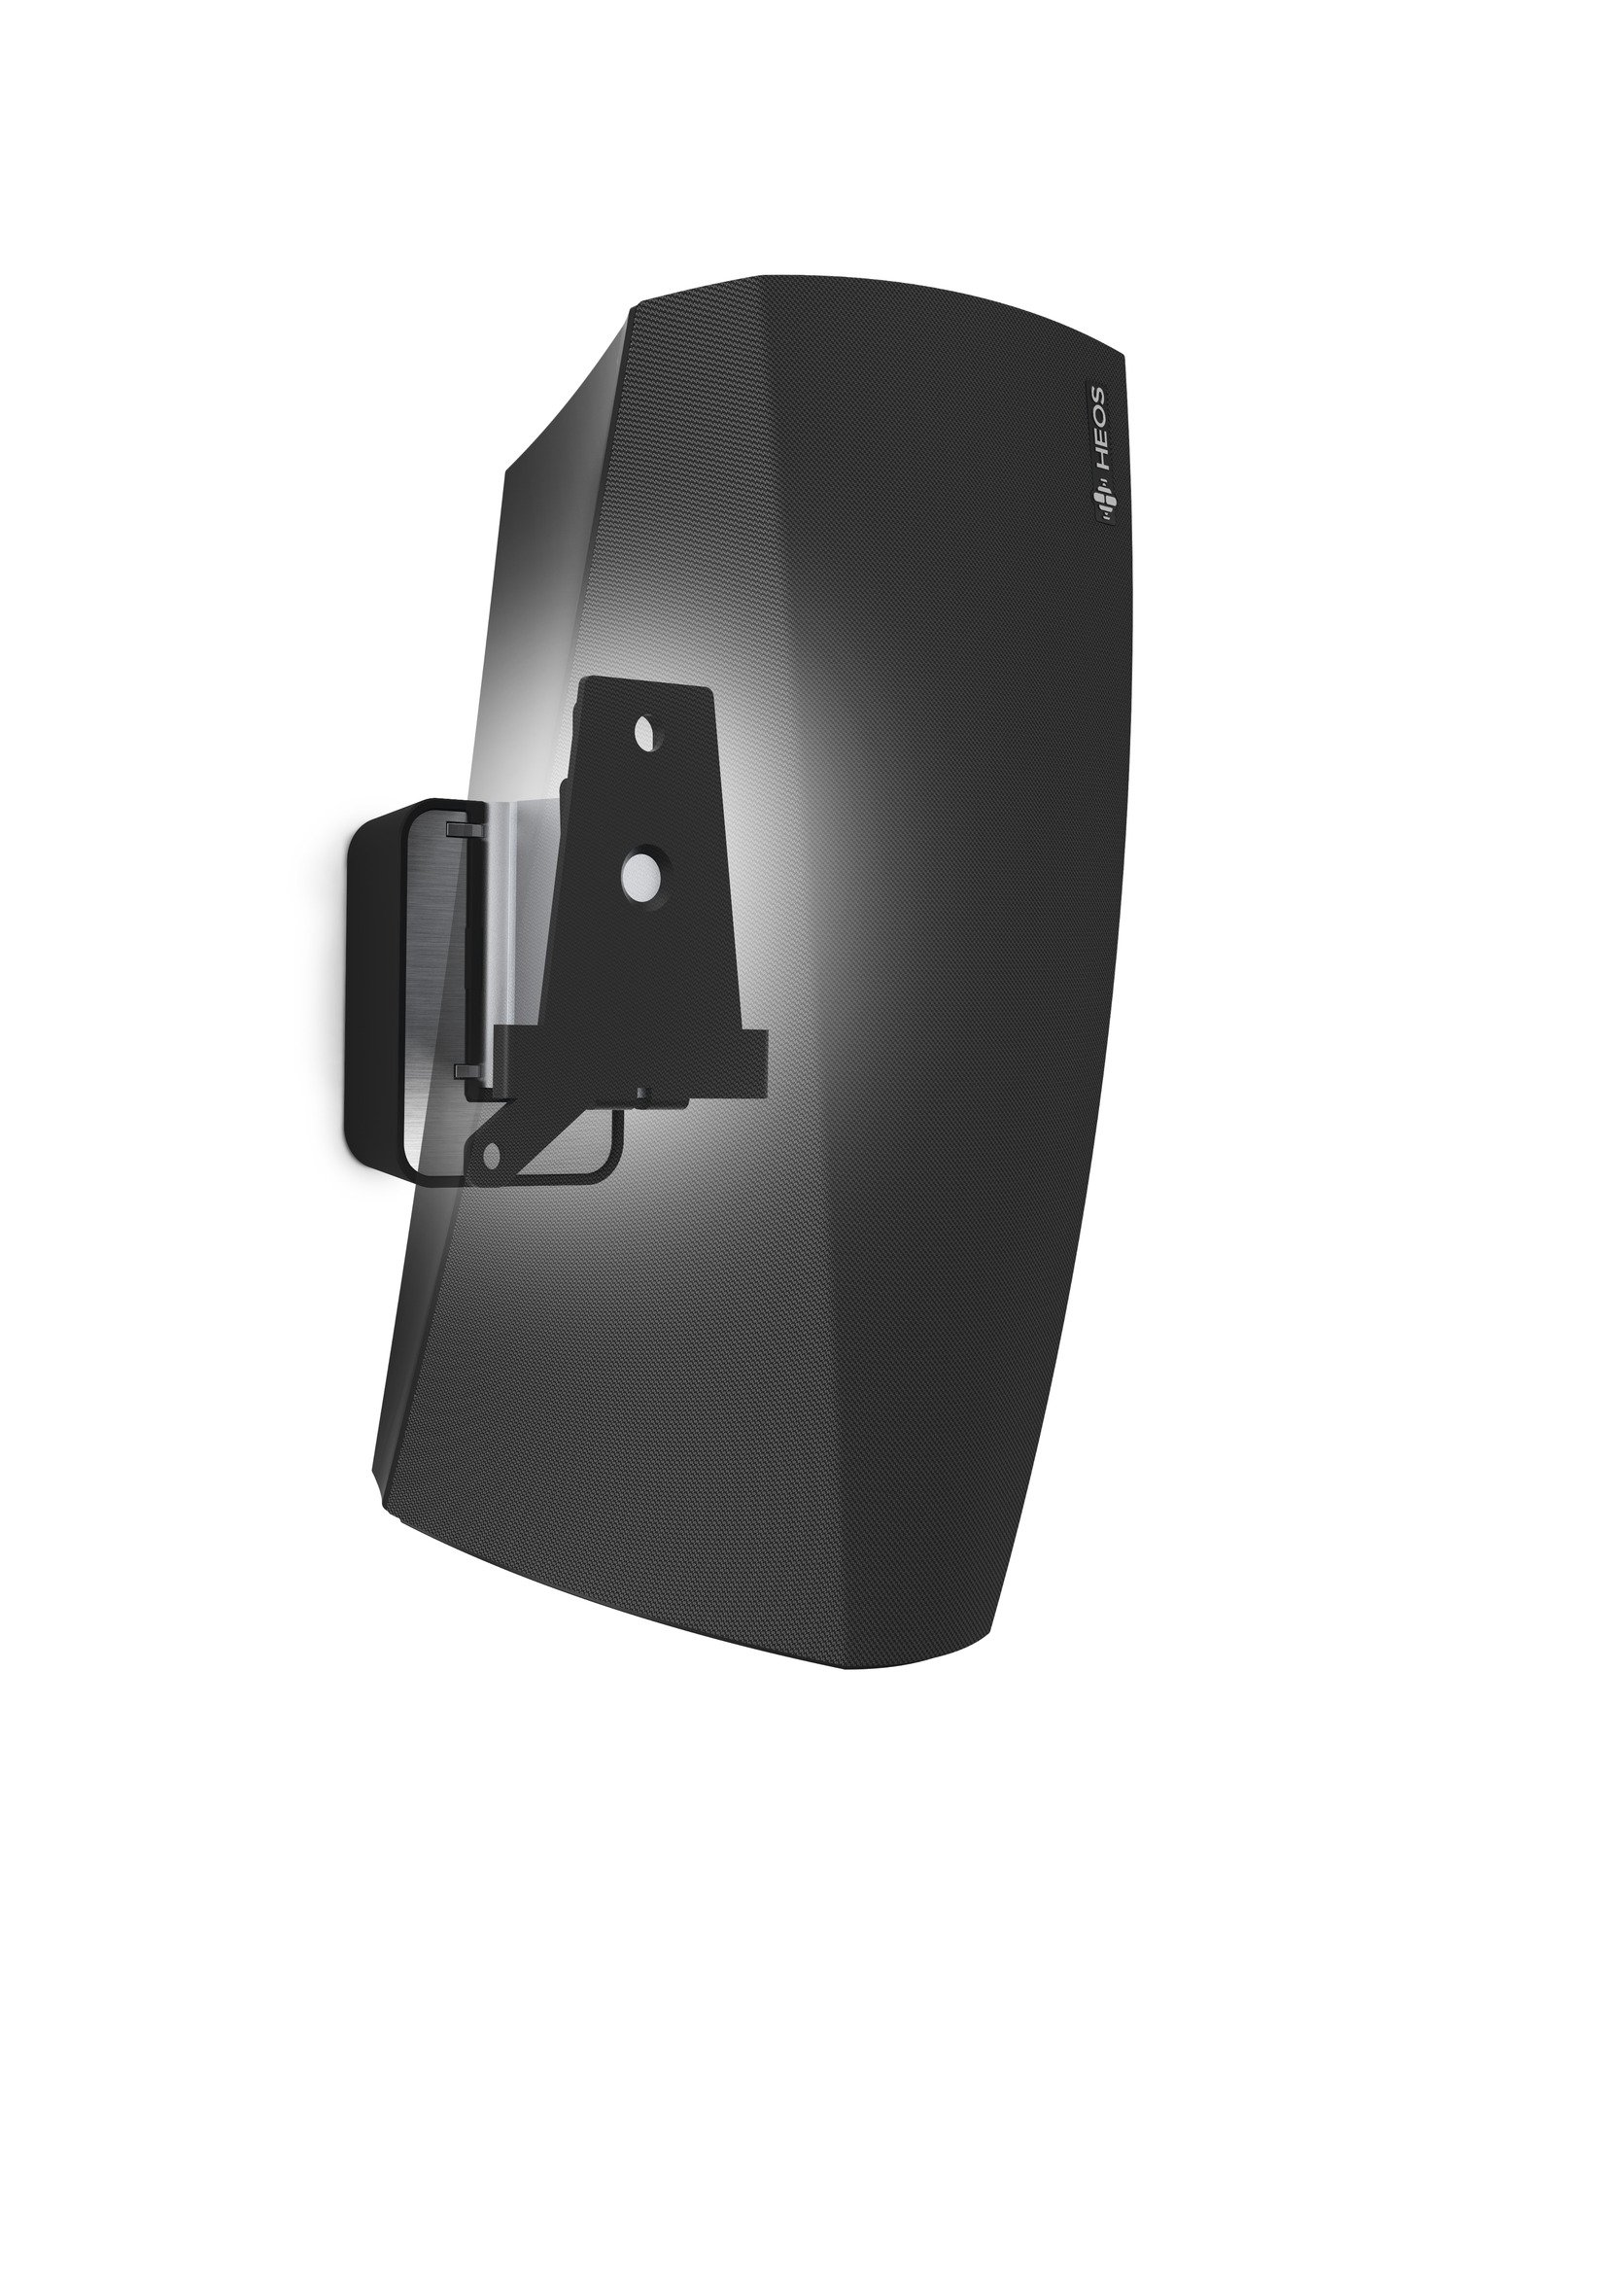 Vogel's Speaker Wall Mount for Denon HEOS - SOUND 5203 B for HEOS 3, Black (single mount)